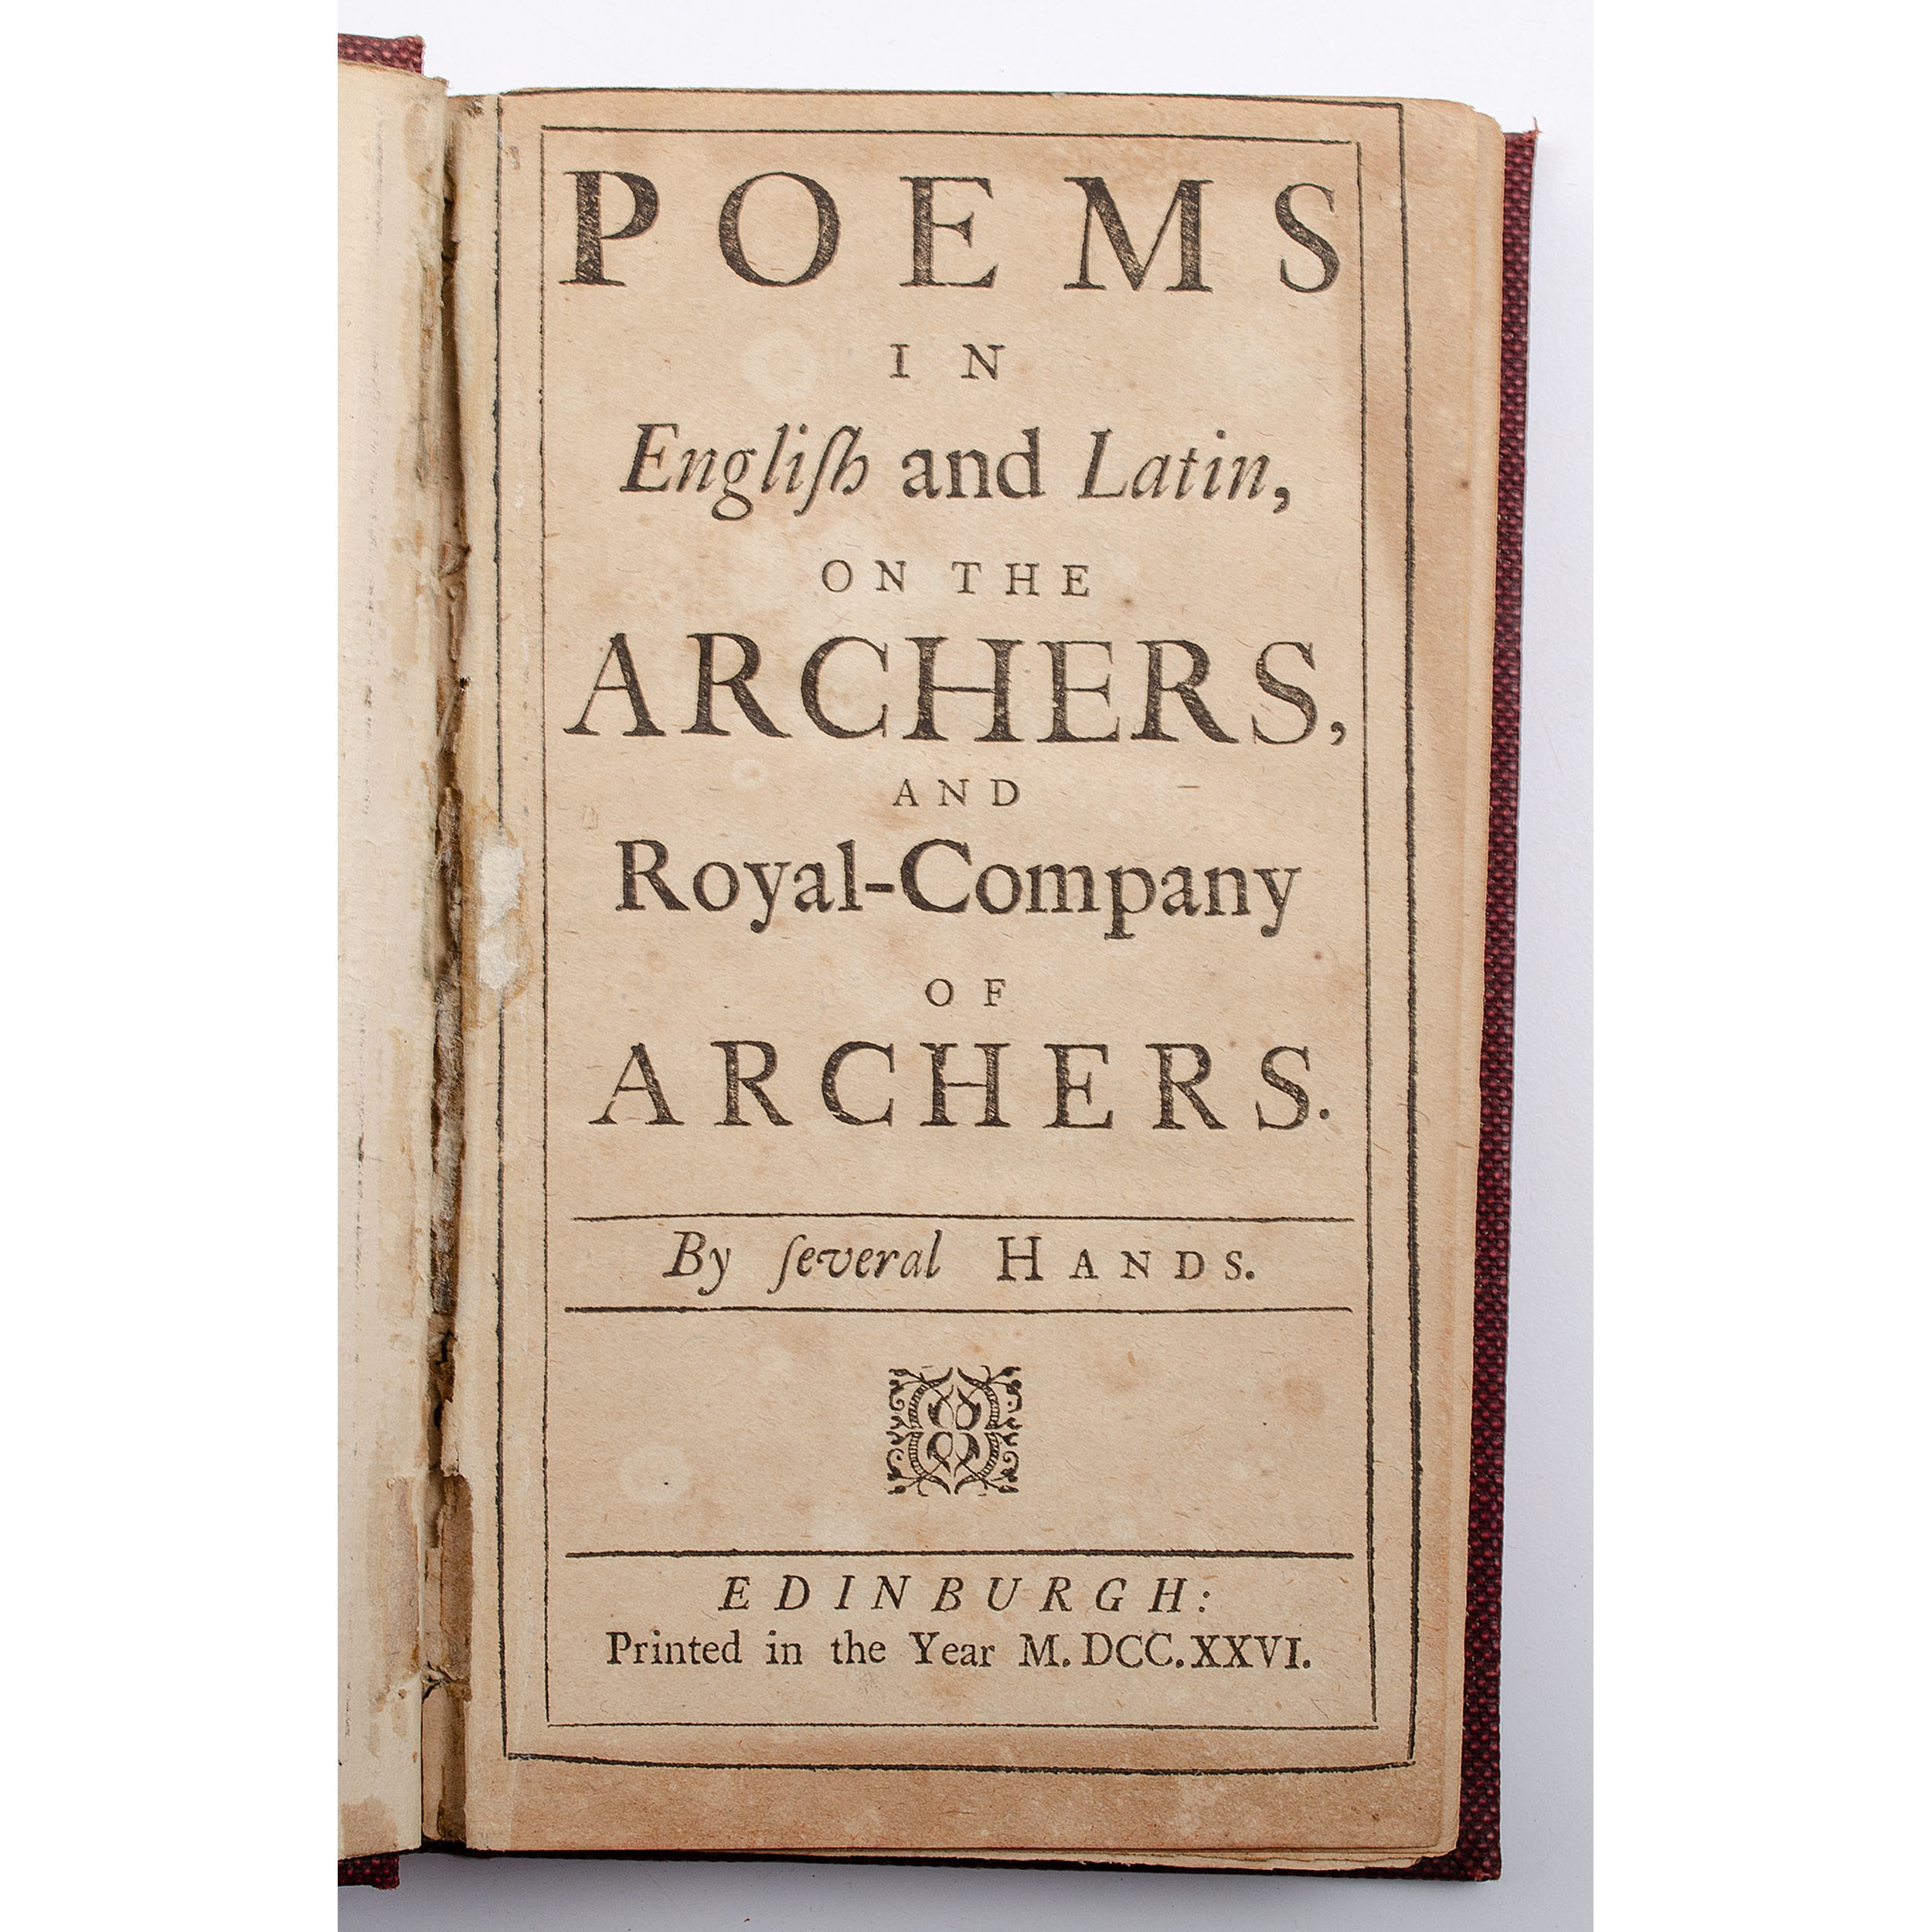 Sporting - Archery - 18th Century Poetry] Poems in English